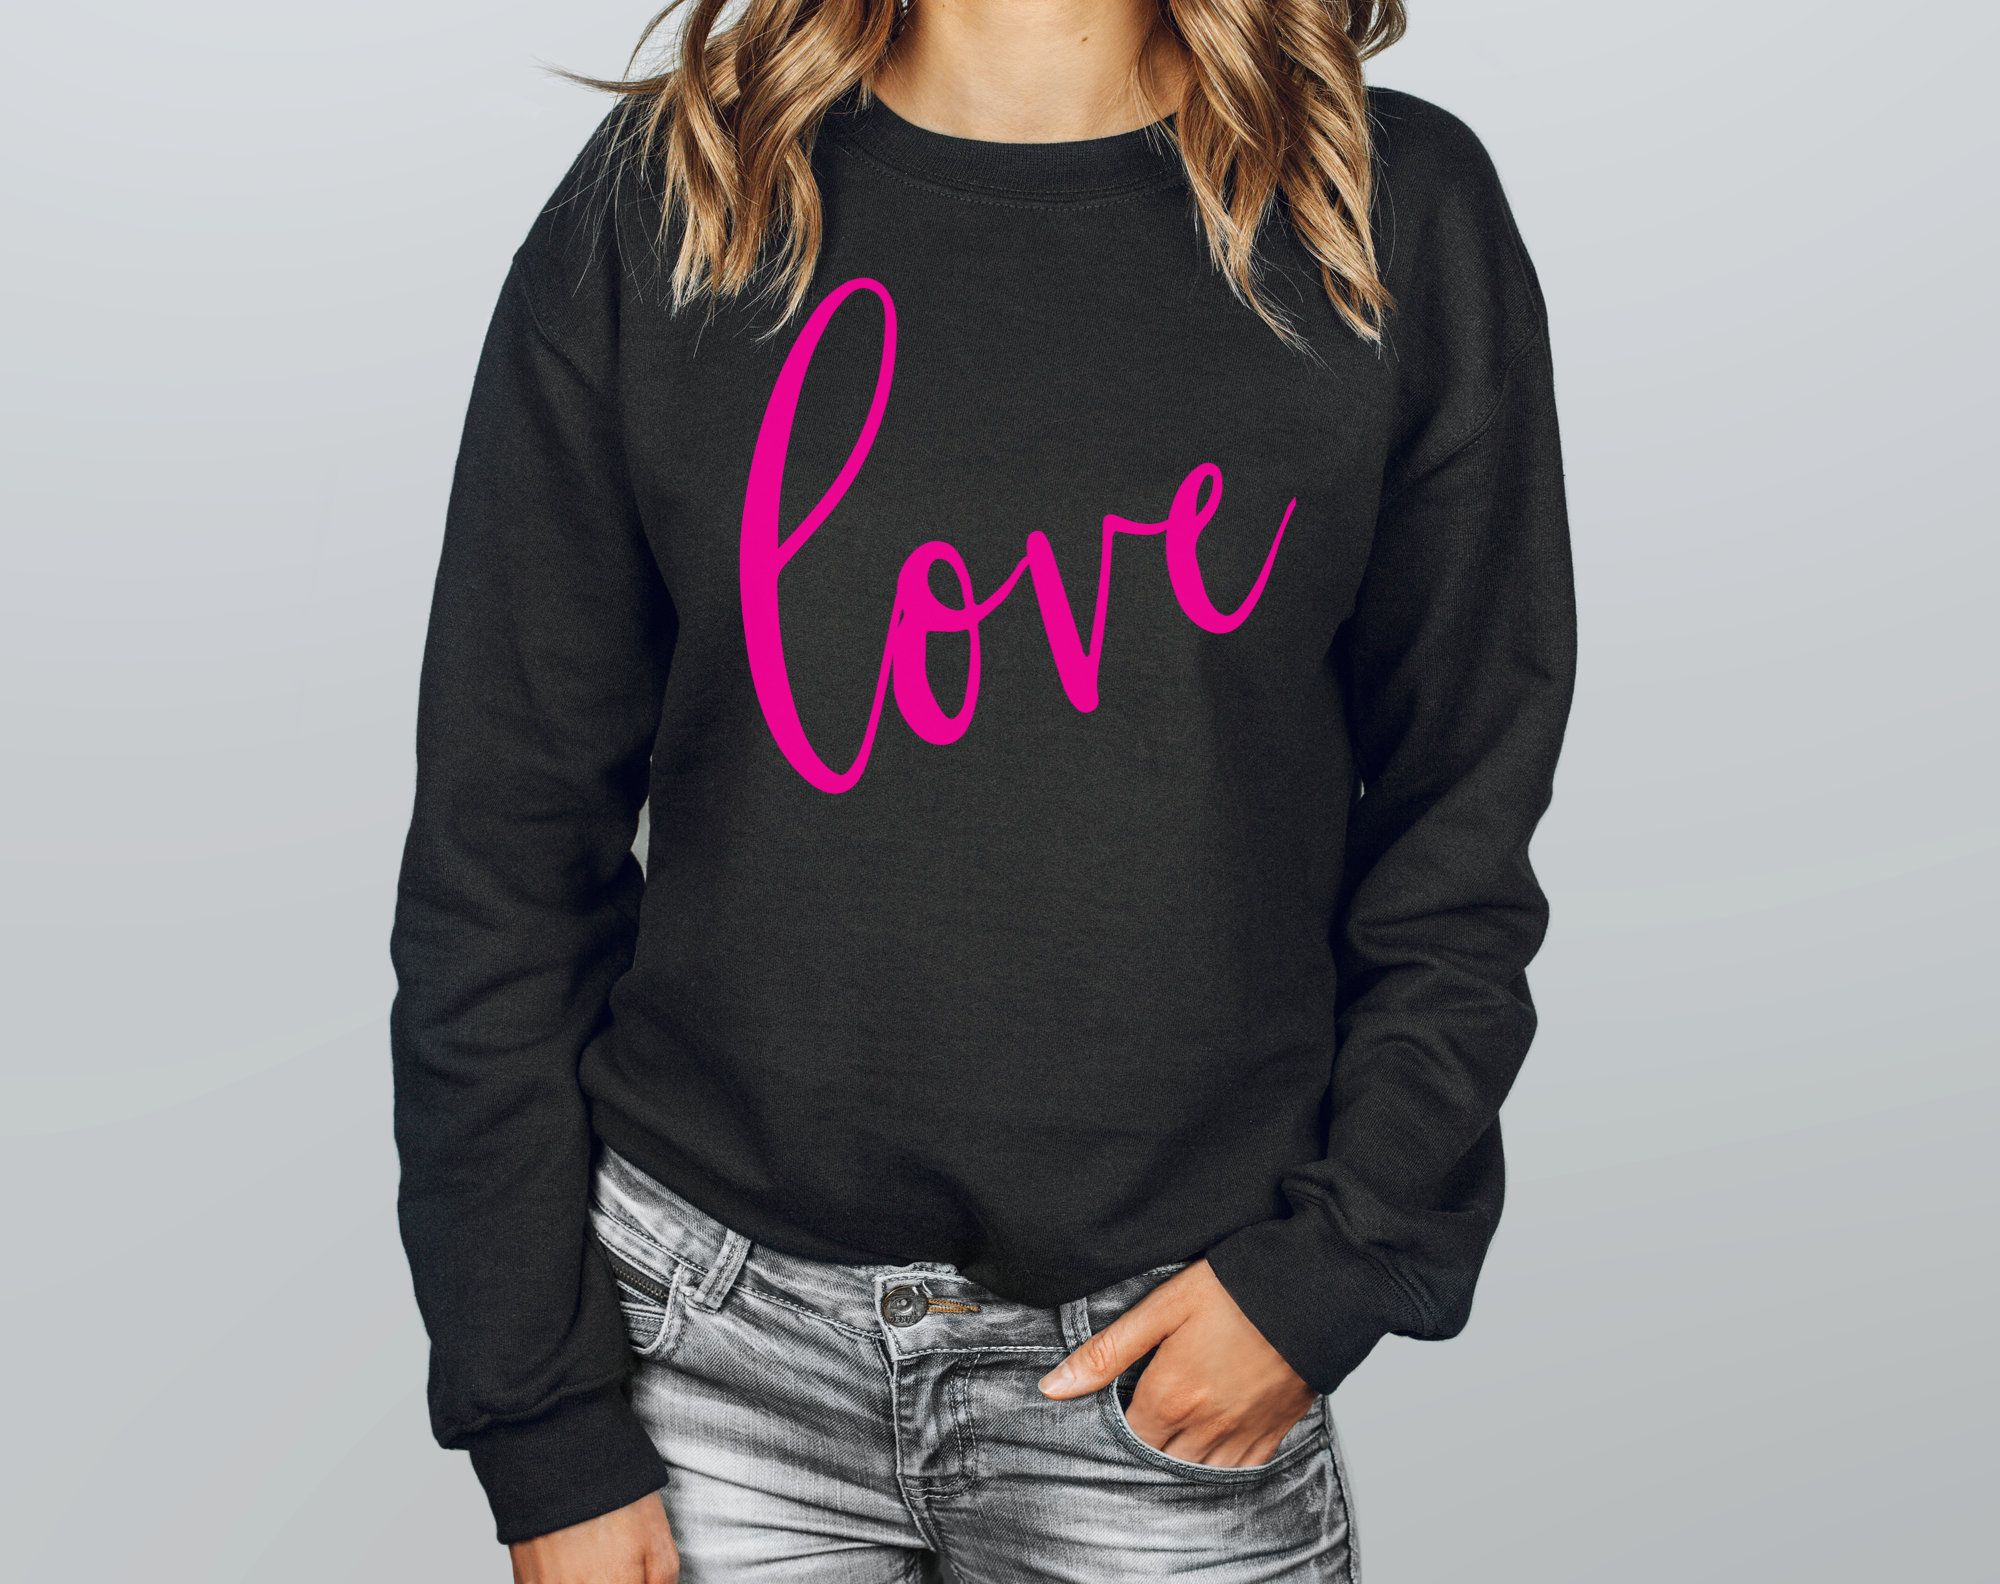 Feel Chic Stylish And Extra Cozy This Fall Season In This New Trending Sweatshirt From Lovingleeboutique Hap Trendy Sweatshirt Sweatshirts Women Fall Hoodies [ 1584 x 2000 Pixel ]